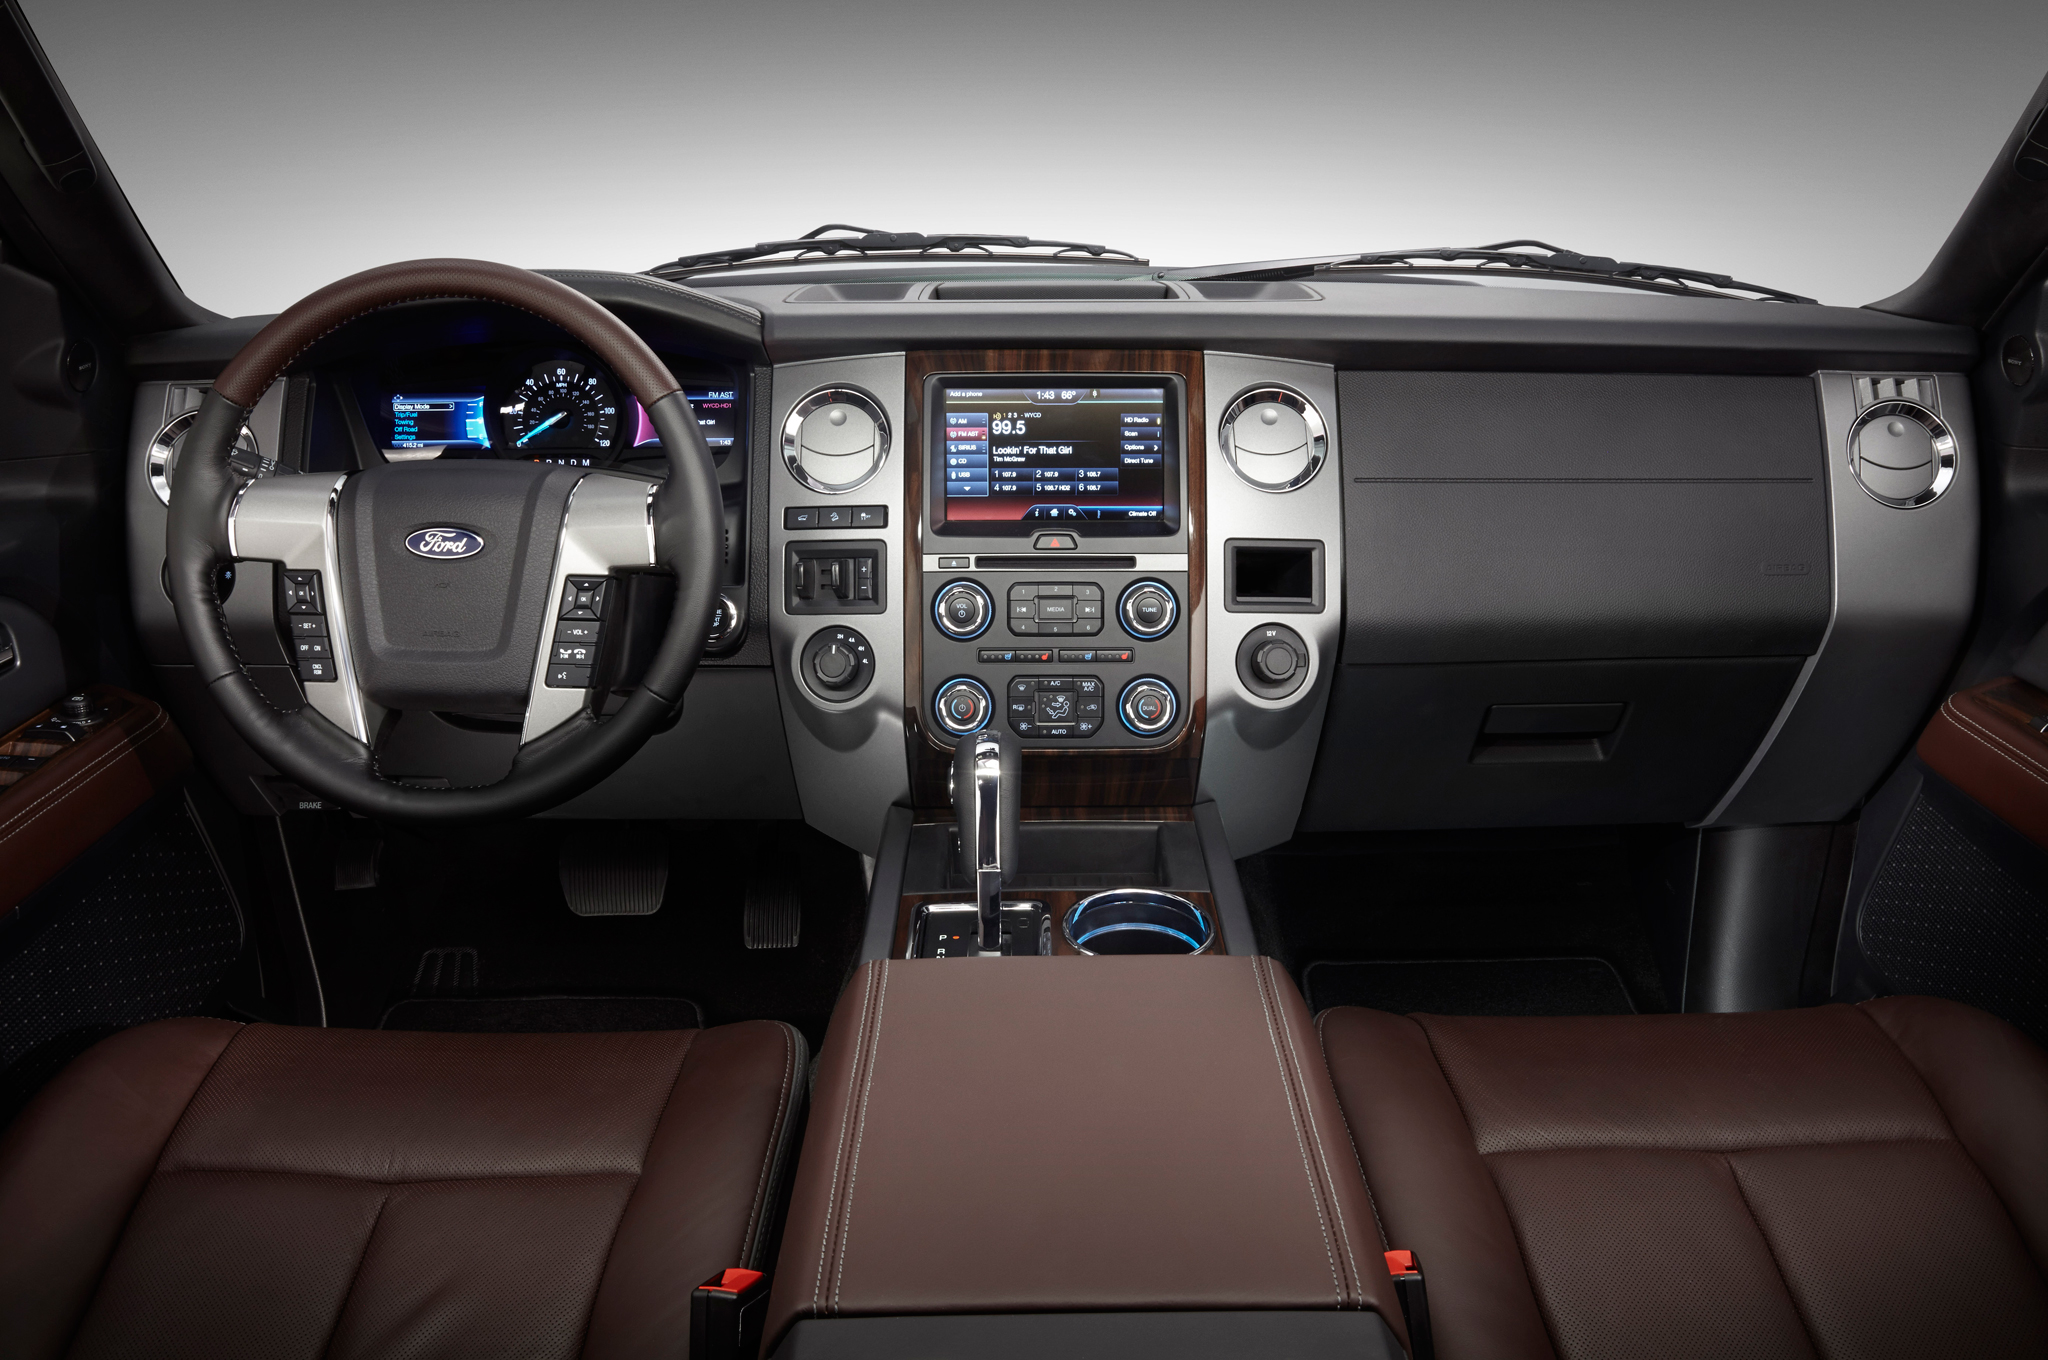 2015 Ford Expedition Front Interior And Dashboard (Photo 3 of 6)